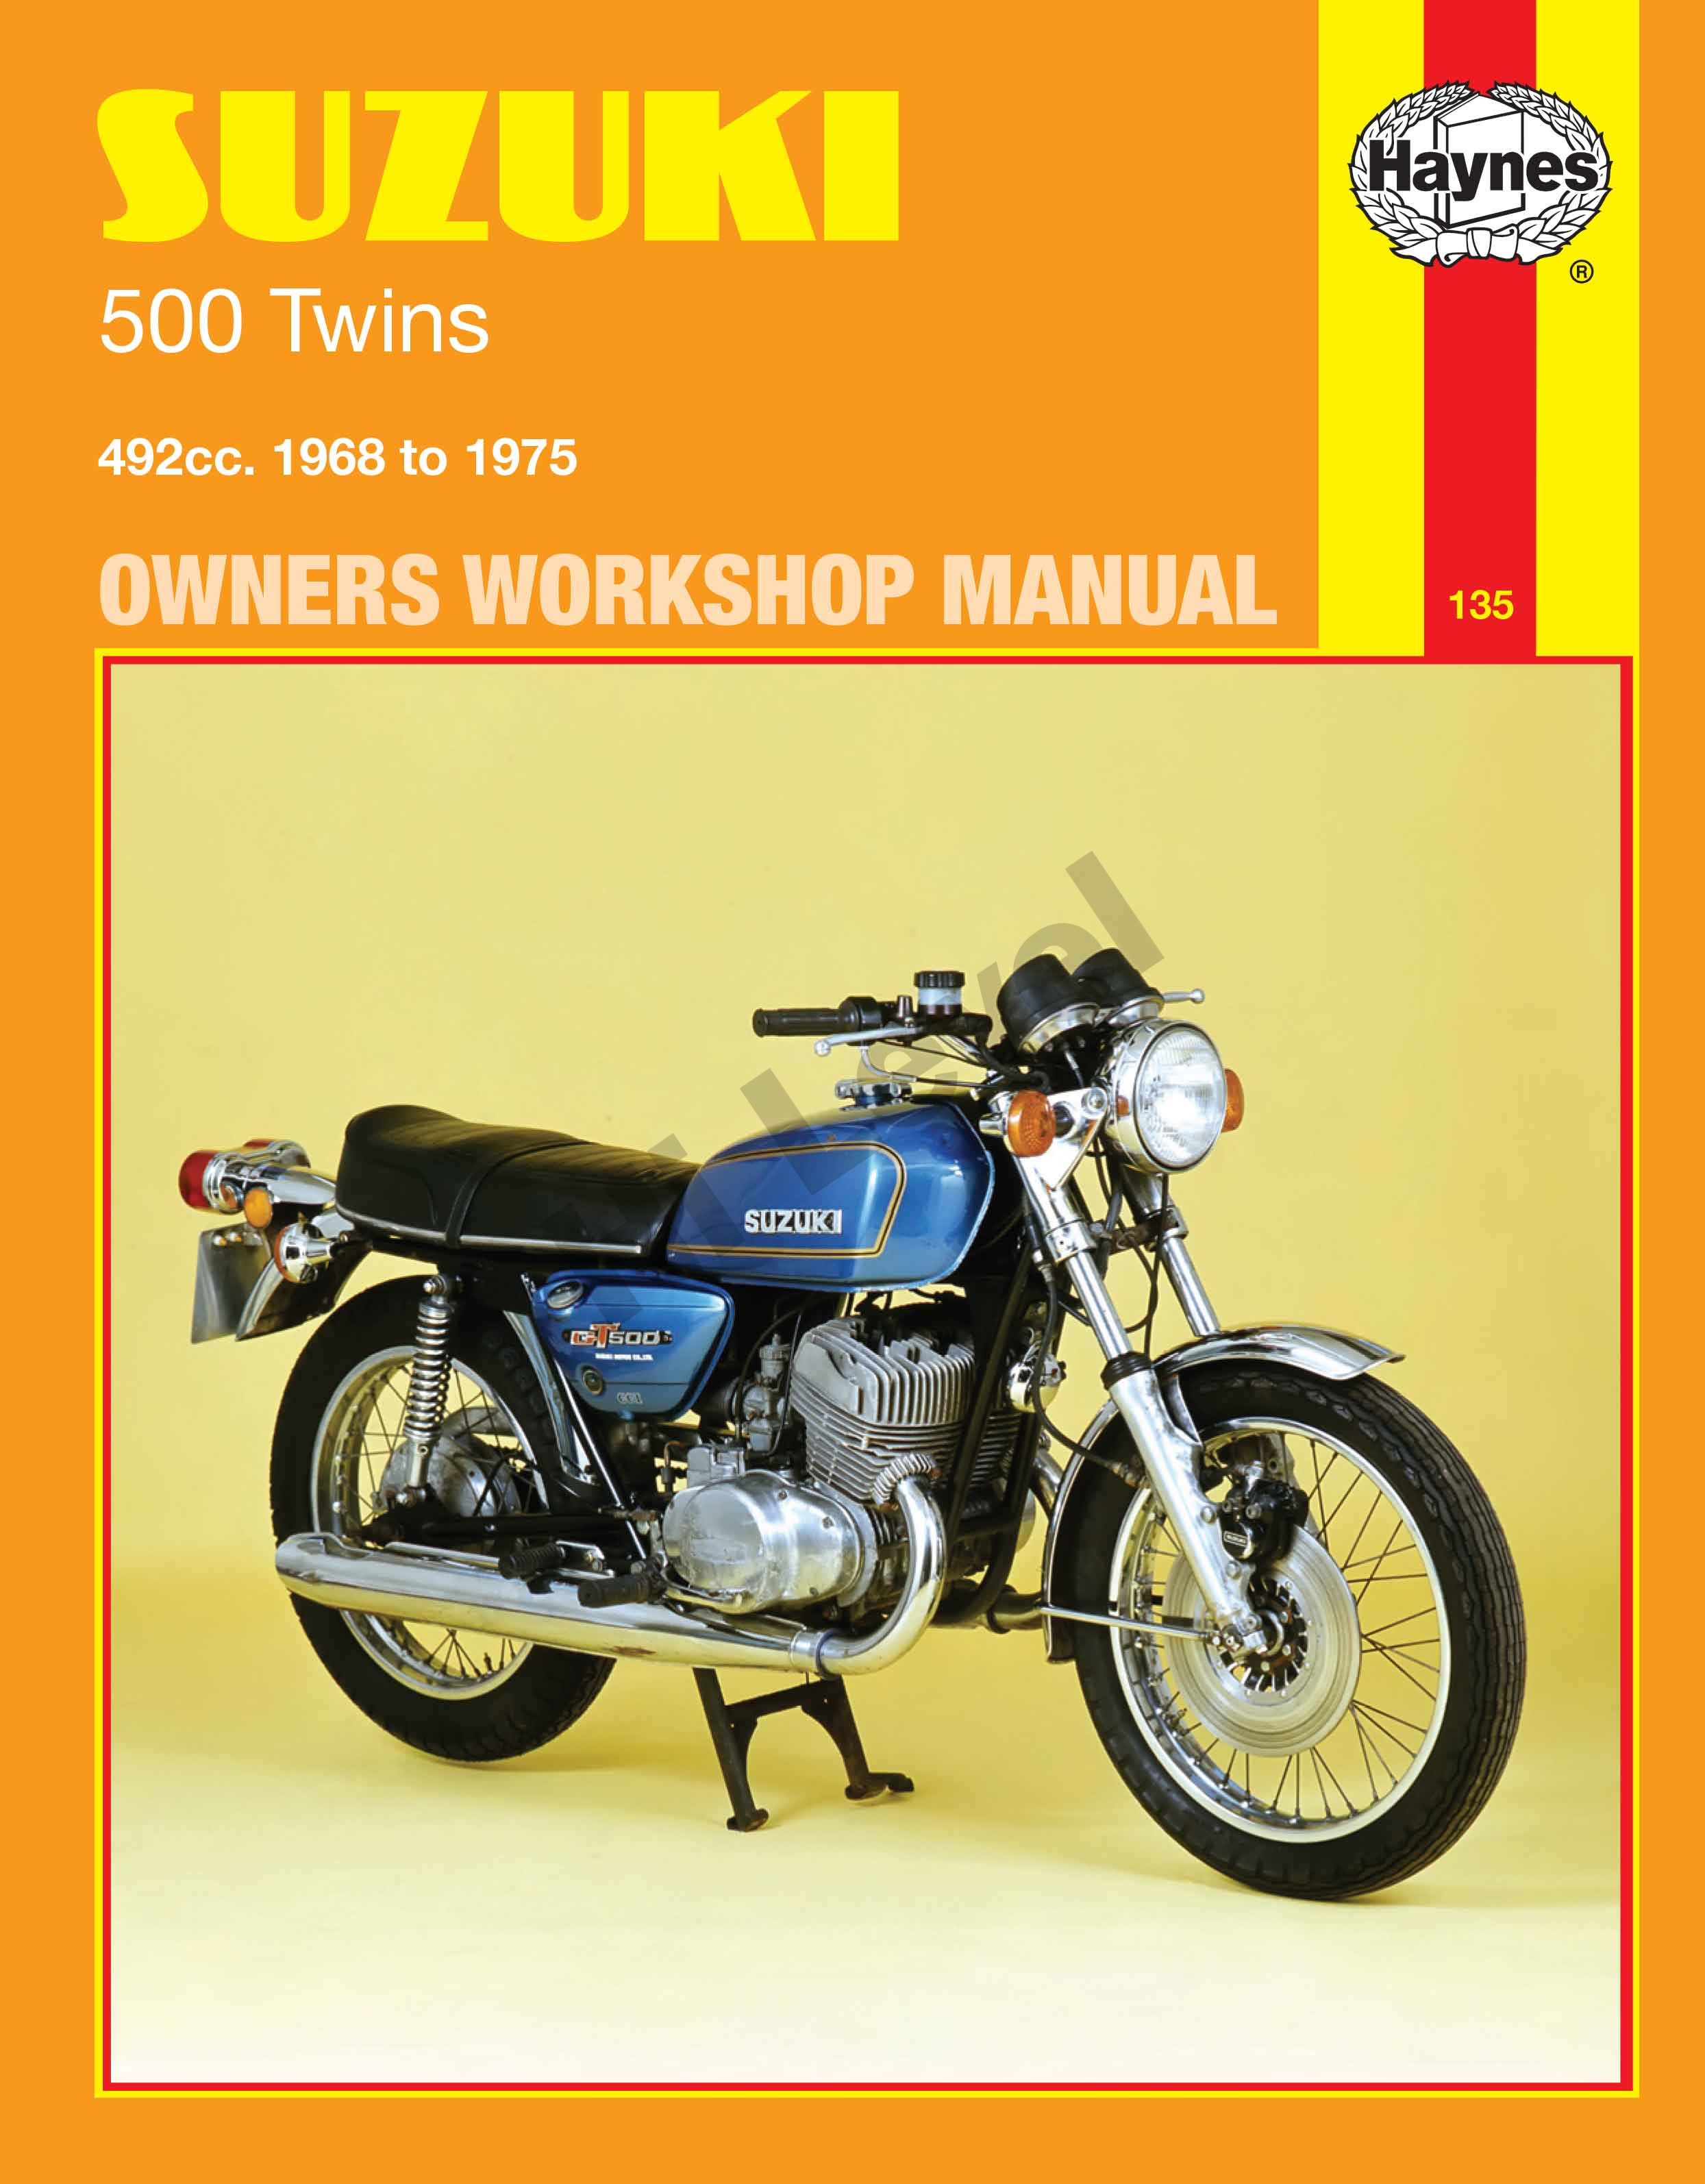 SUZUKI T500, SUZUKI GT500A, SUZUKI GT500B 1968-1978 WORKSHOP MANUAL